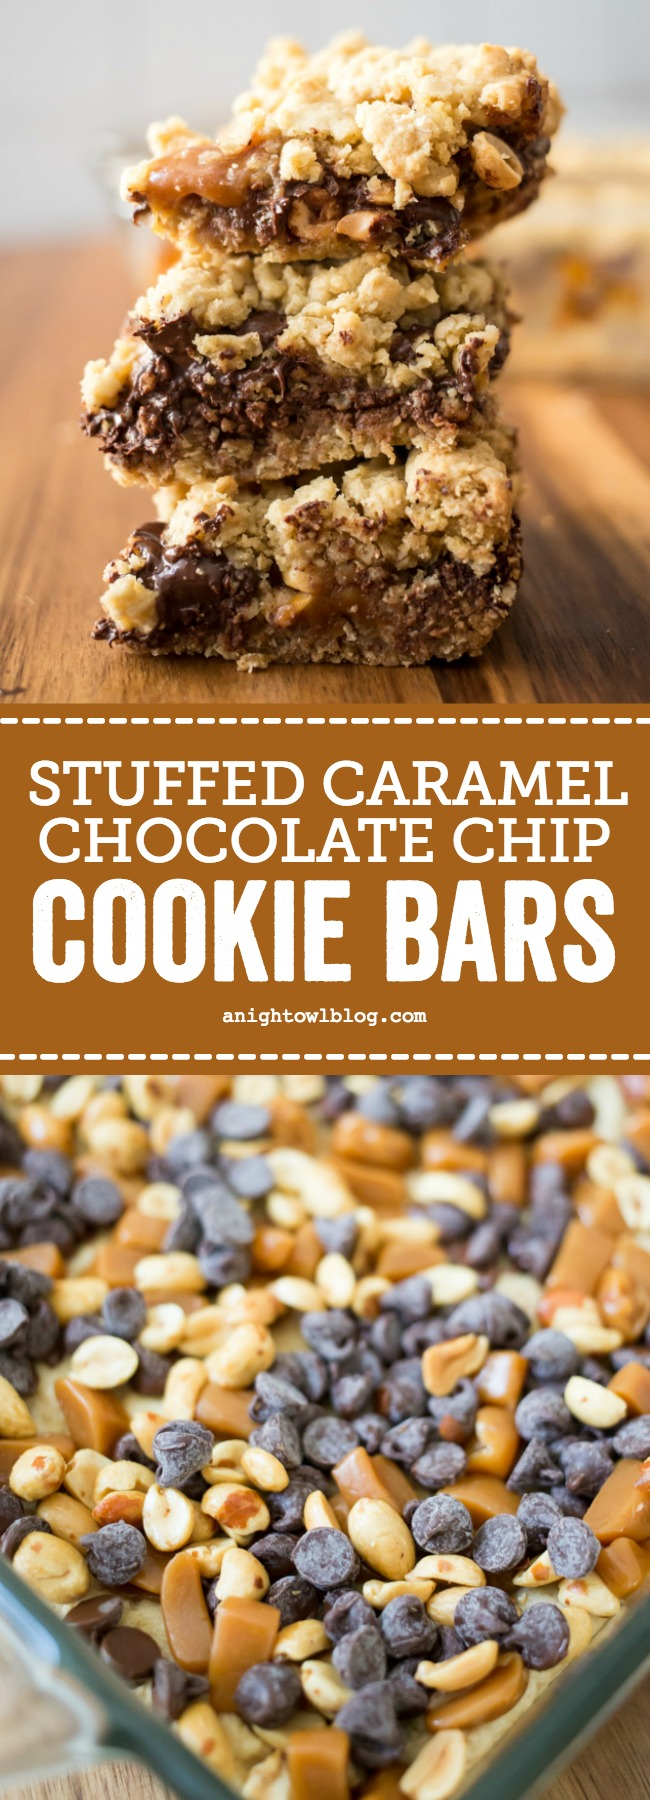 Stuffed with Werther's Soft Caramels, peanuts and chocolate chips, you're going to drool over these Stuffed Caramel Chocolate Chip Cookie Bars! #ChocolateChipBars #CookieBars #CookieRecipes